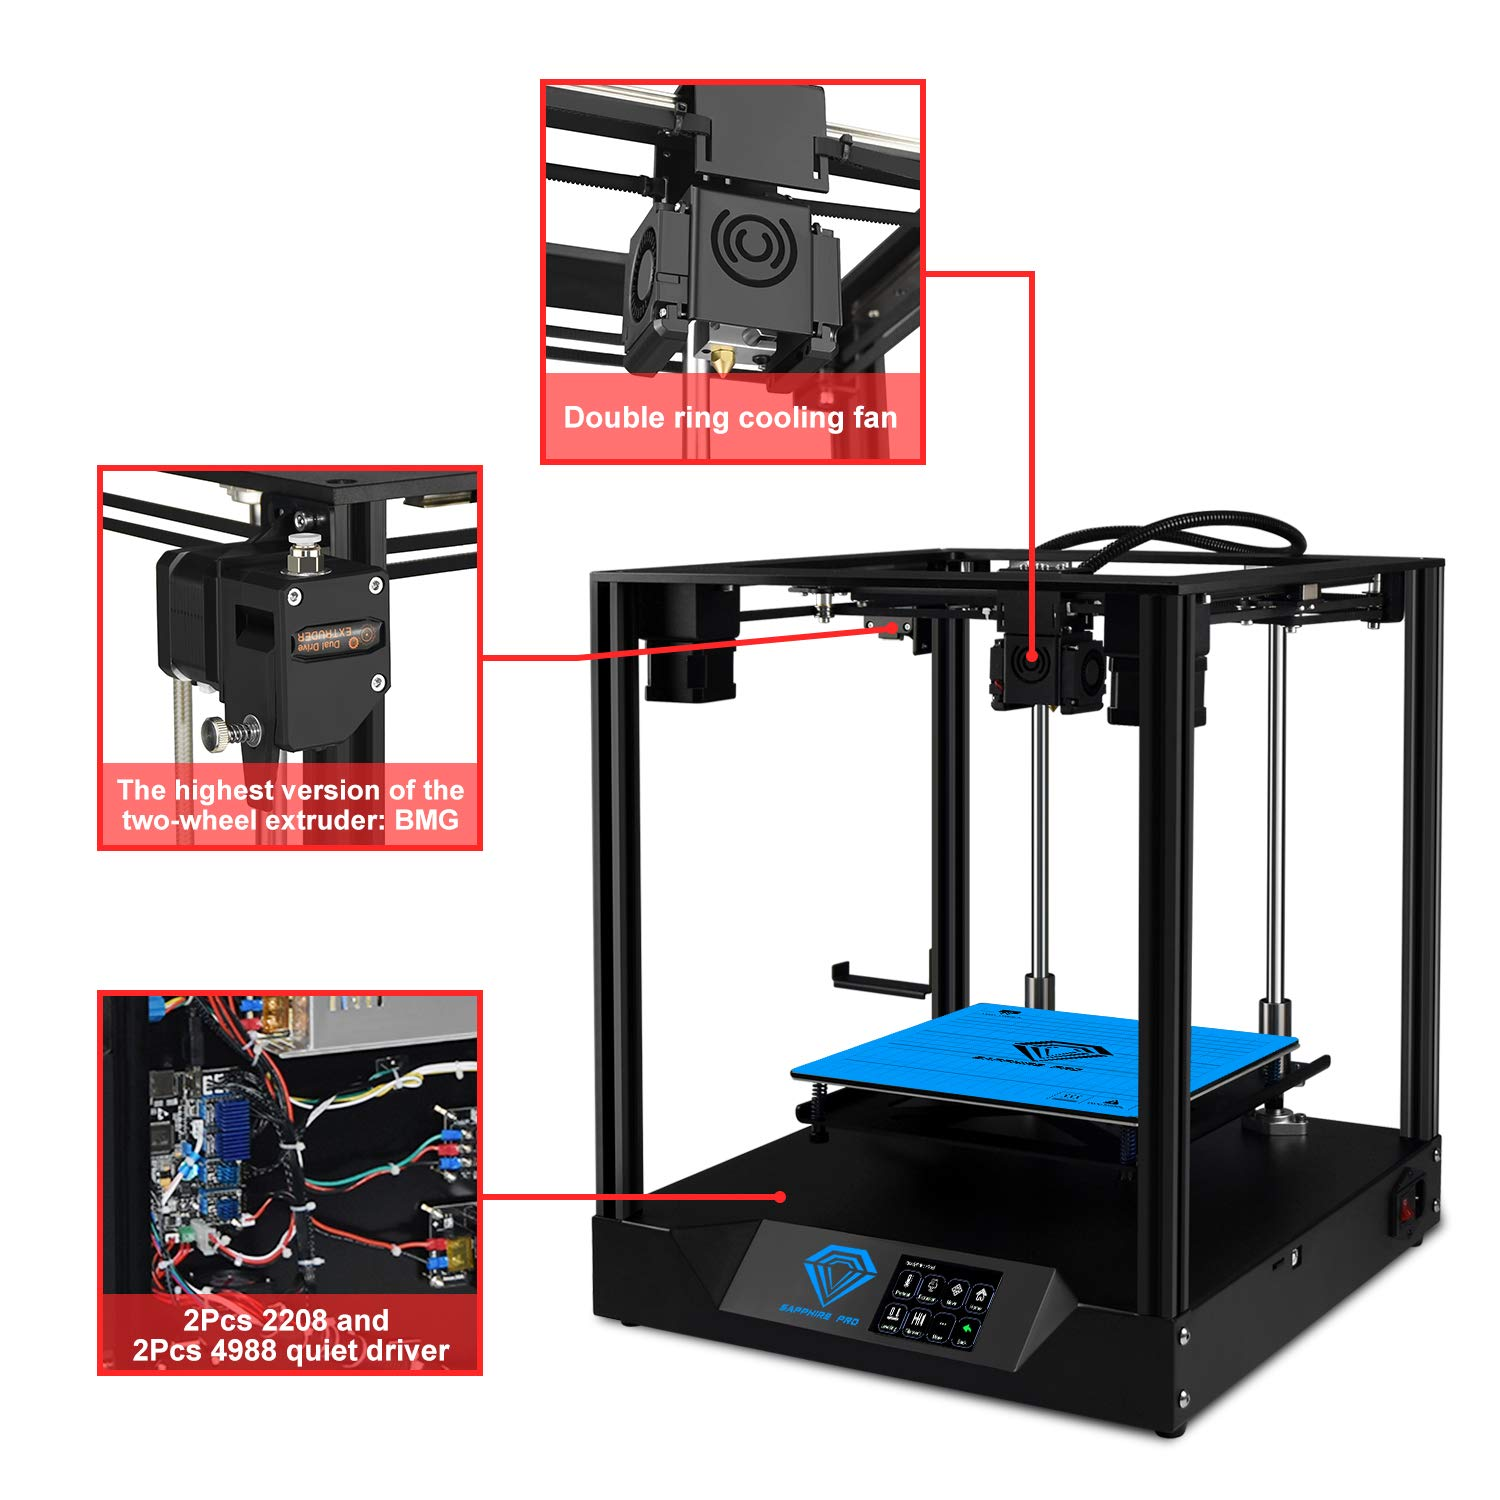 Two Trees 3D Printer Sapphire PRO High Precision CoreXY Structure DIY 3D Printer 235 x 235 x 235mm Printing Size with Power Resume Function//Off-line Print//3.5 inch Touch Display